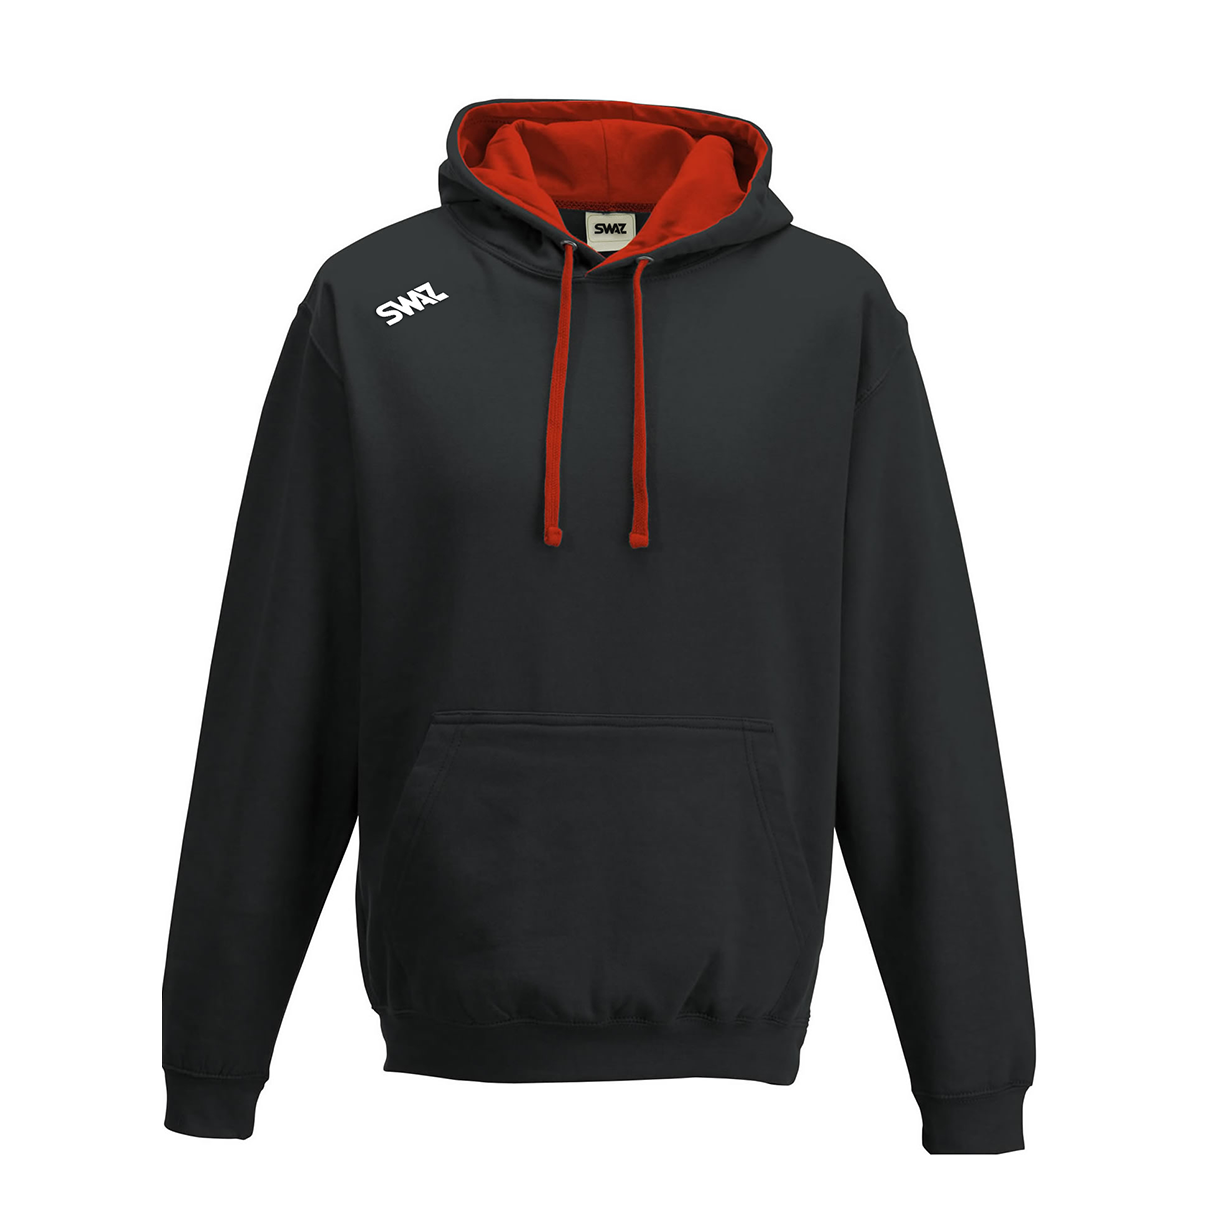 SWAZ Club Hoody – Black/Red